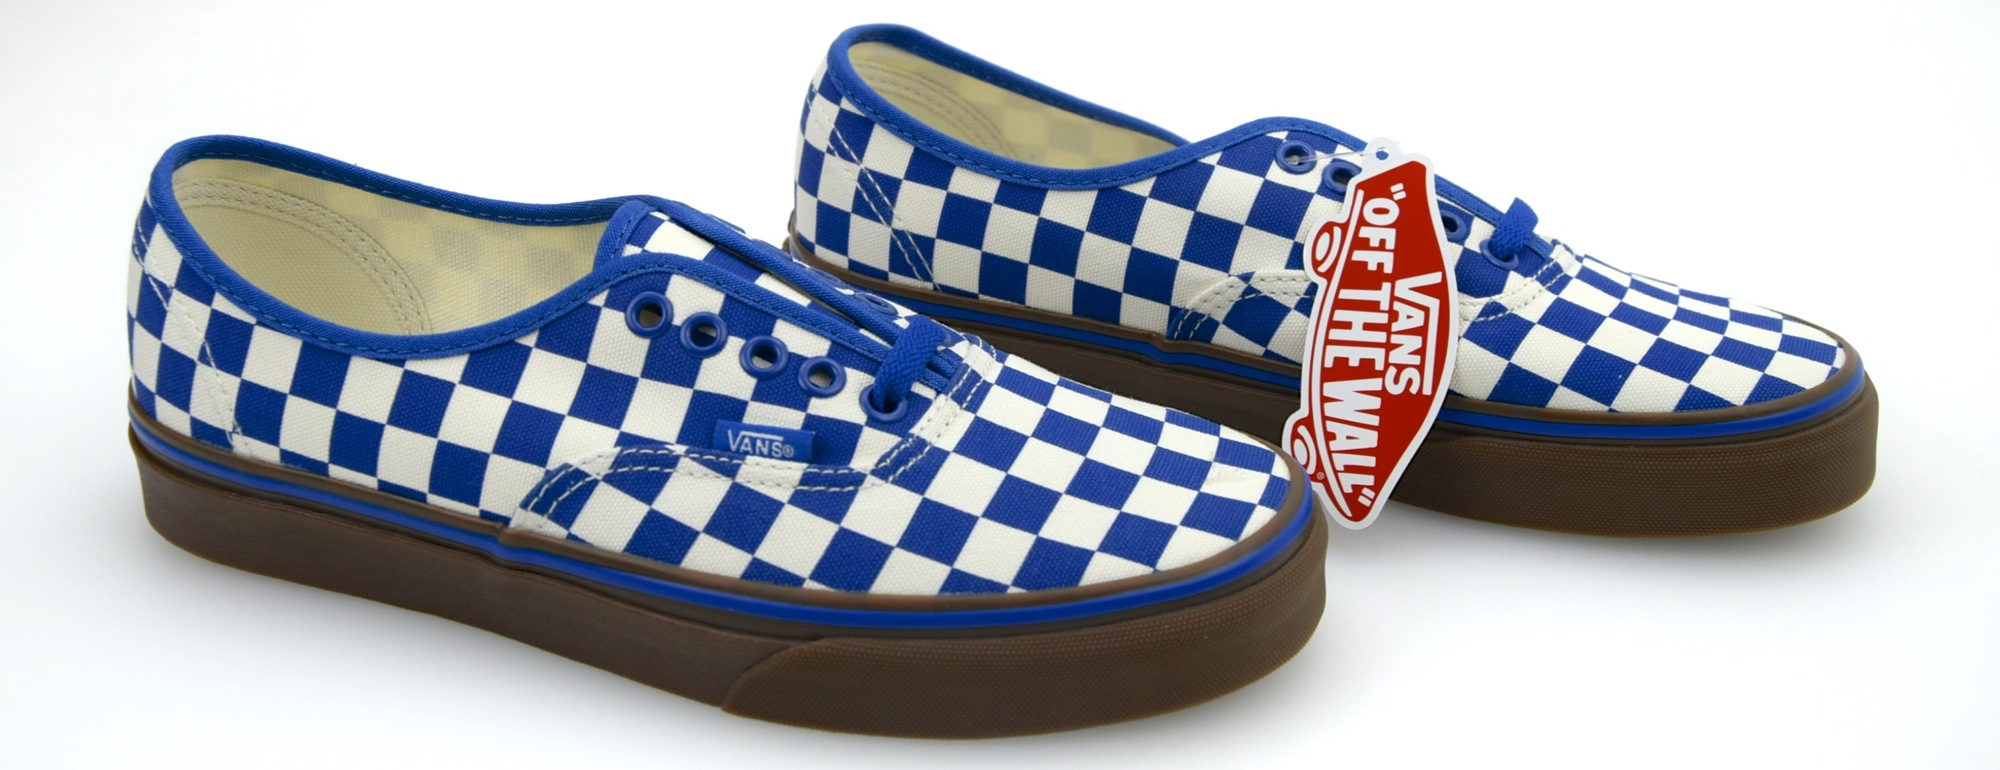 f19c7500a8 Details about VANS MAN SNEAKER SHOES CHECKERBOARD CASUAL FREE TIME CODE  AUTHENTIC VN0004MKIC5